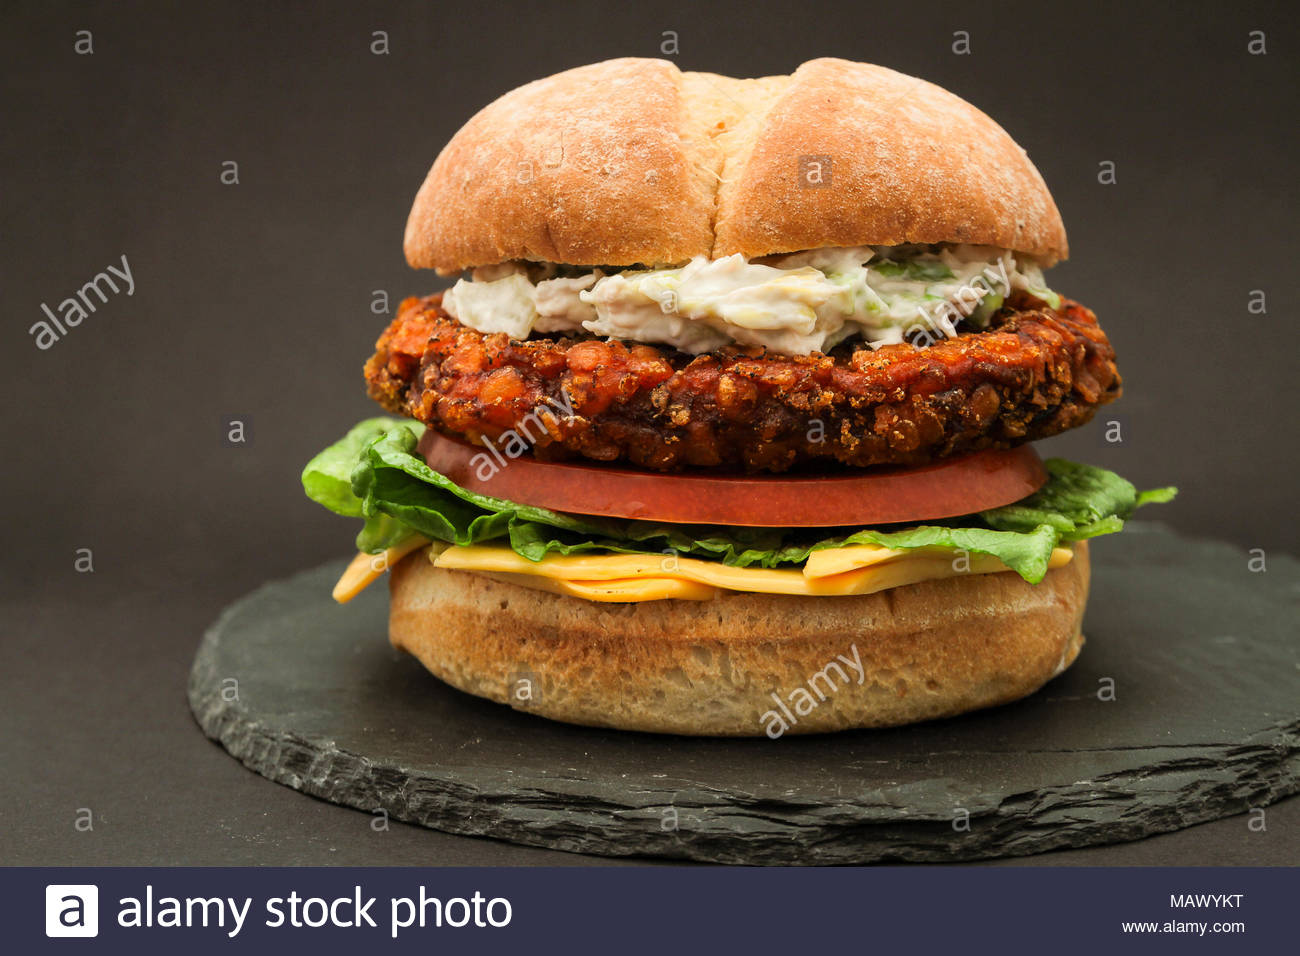 Menu combo stock photos menu combo stock images alamy for Fish fast food near me